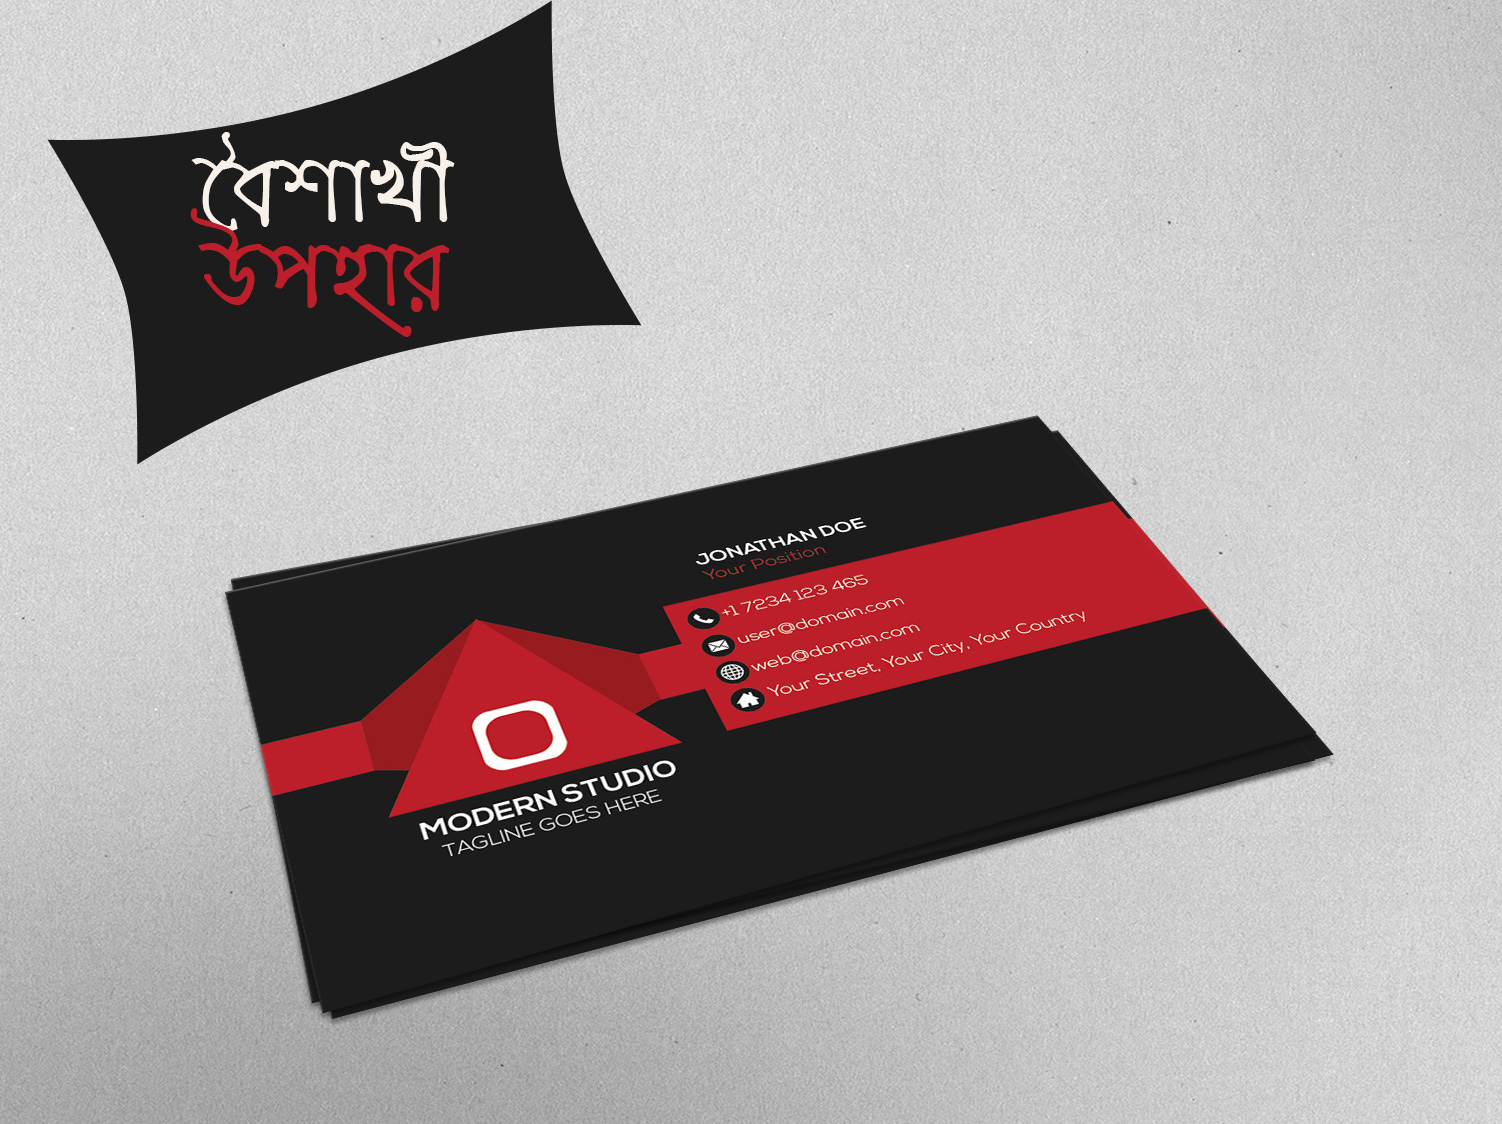 Freebiee Boishakhi Business Card PSD Template by mehranchy on DeviantArt